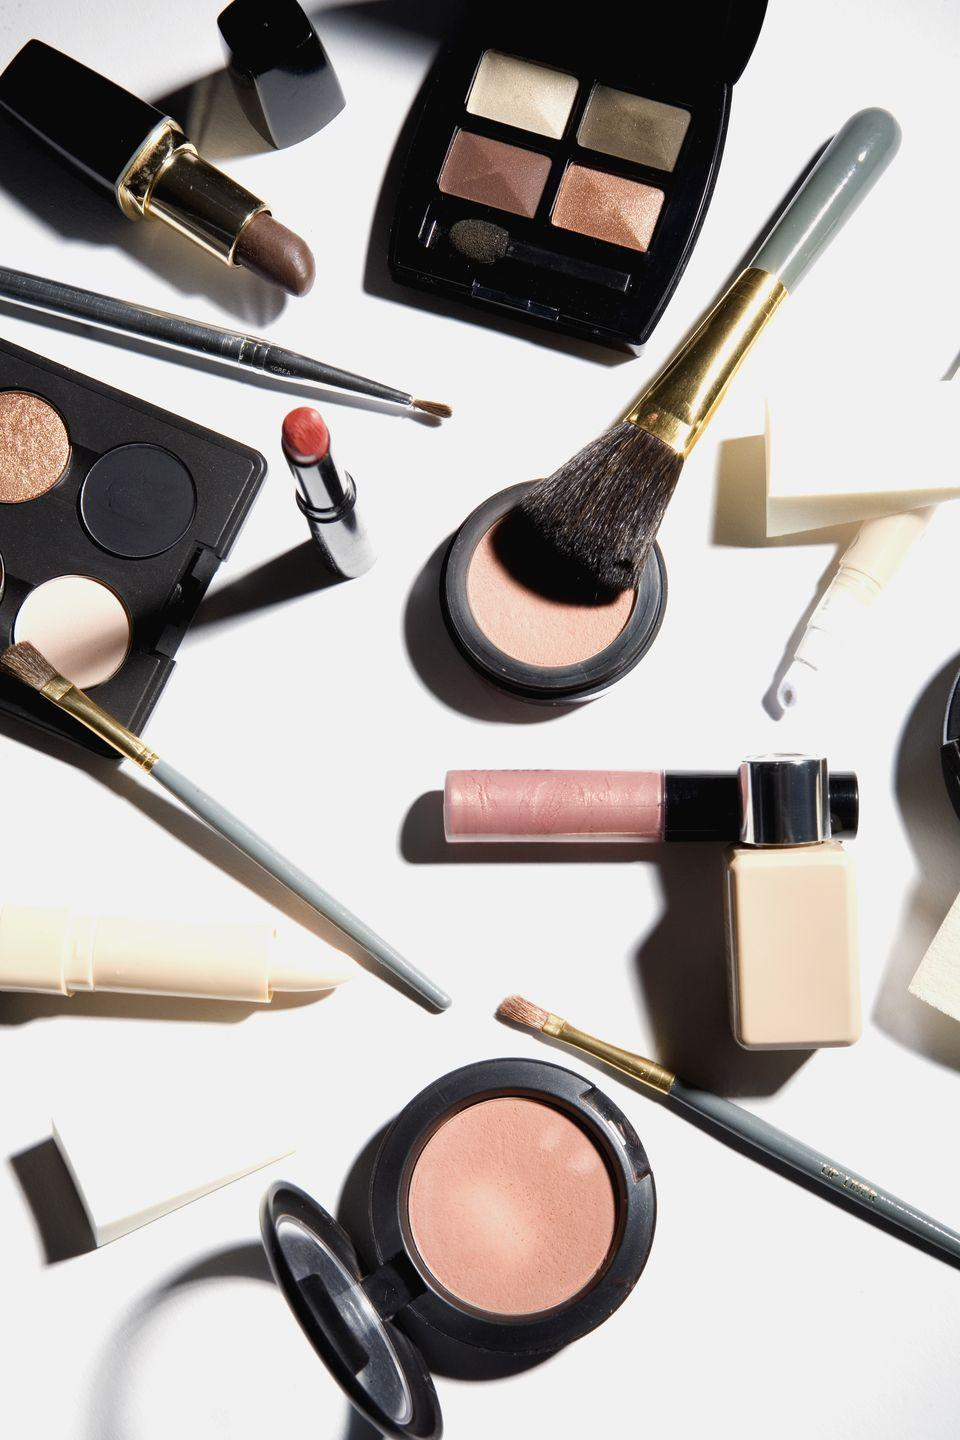 """<p>Pare down your <a href=""""https://www.womansday.com/style/beauty/"""" rel=""""nofollow noopener"""" target=""""_blank"""" data-ylk=""""slk:cosmetics"""" class=""""link rapid-noclick-resp"""">cosmetics</a> so that it all fits in one portable bag.</p><p><strong><a class=""""link rapid-noclick-resp"""" href=""""https://www.amazon.com/habe-Travel-Makeup-Bag-Mirror/dp/B07533PN55/ref=sr_1_6_s_it?s=beauty&ie=UTF8&qid=1544815723&sr=1-6&keywords=Cosmetic%2Bbag&tag=syn-yahoo-20&ascsubtag=%5Bartid%7C10070.g.3310%5Bsrc%7Cyahoo-us"""" rel=""""nofollow noopener"""" target=""""_blank"""" data-ylk=""""slk:SHOP MAKEUP BAGS"""">SHOP MAKEUP BAGS</a></strong></p>"""